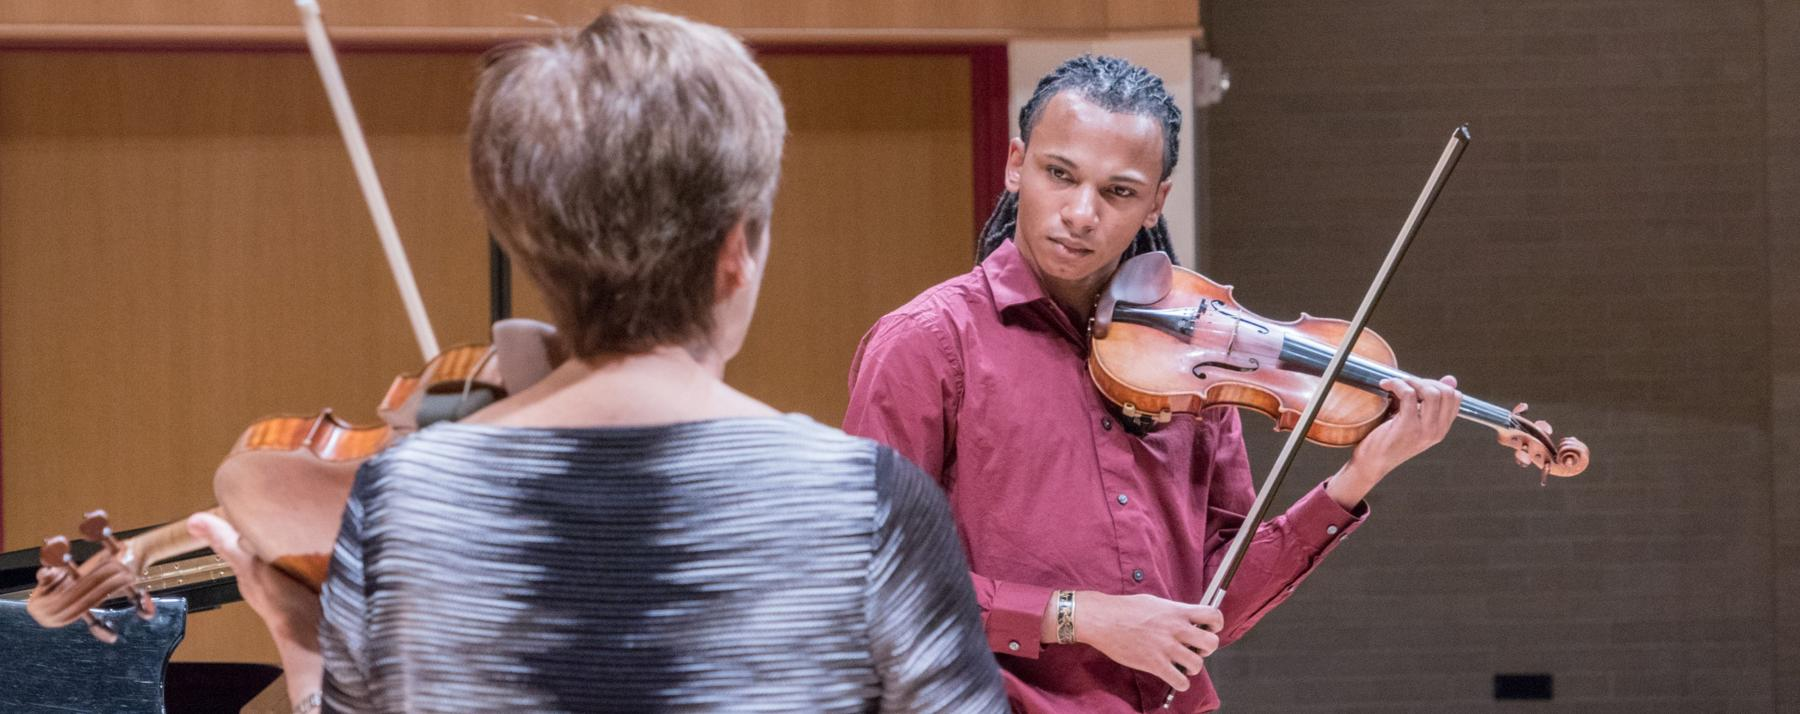 violin student practicing with instructor